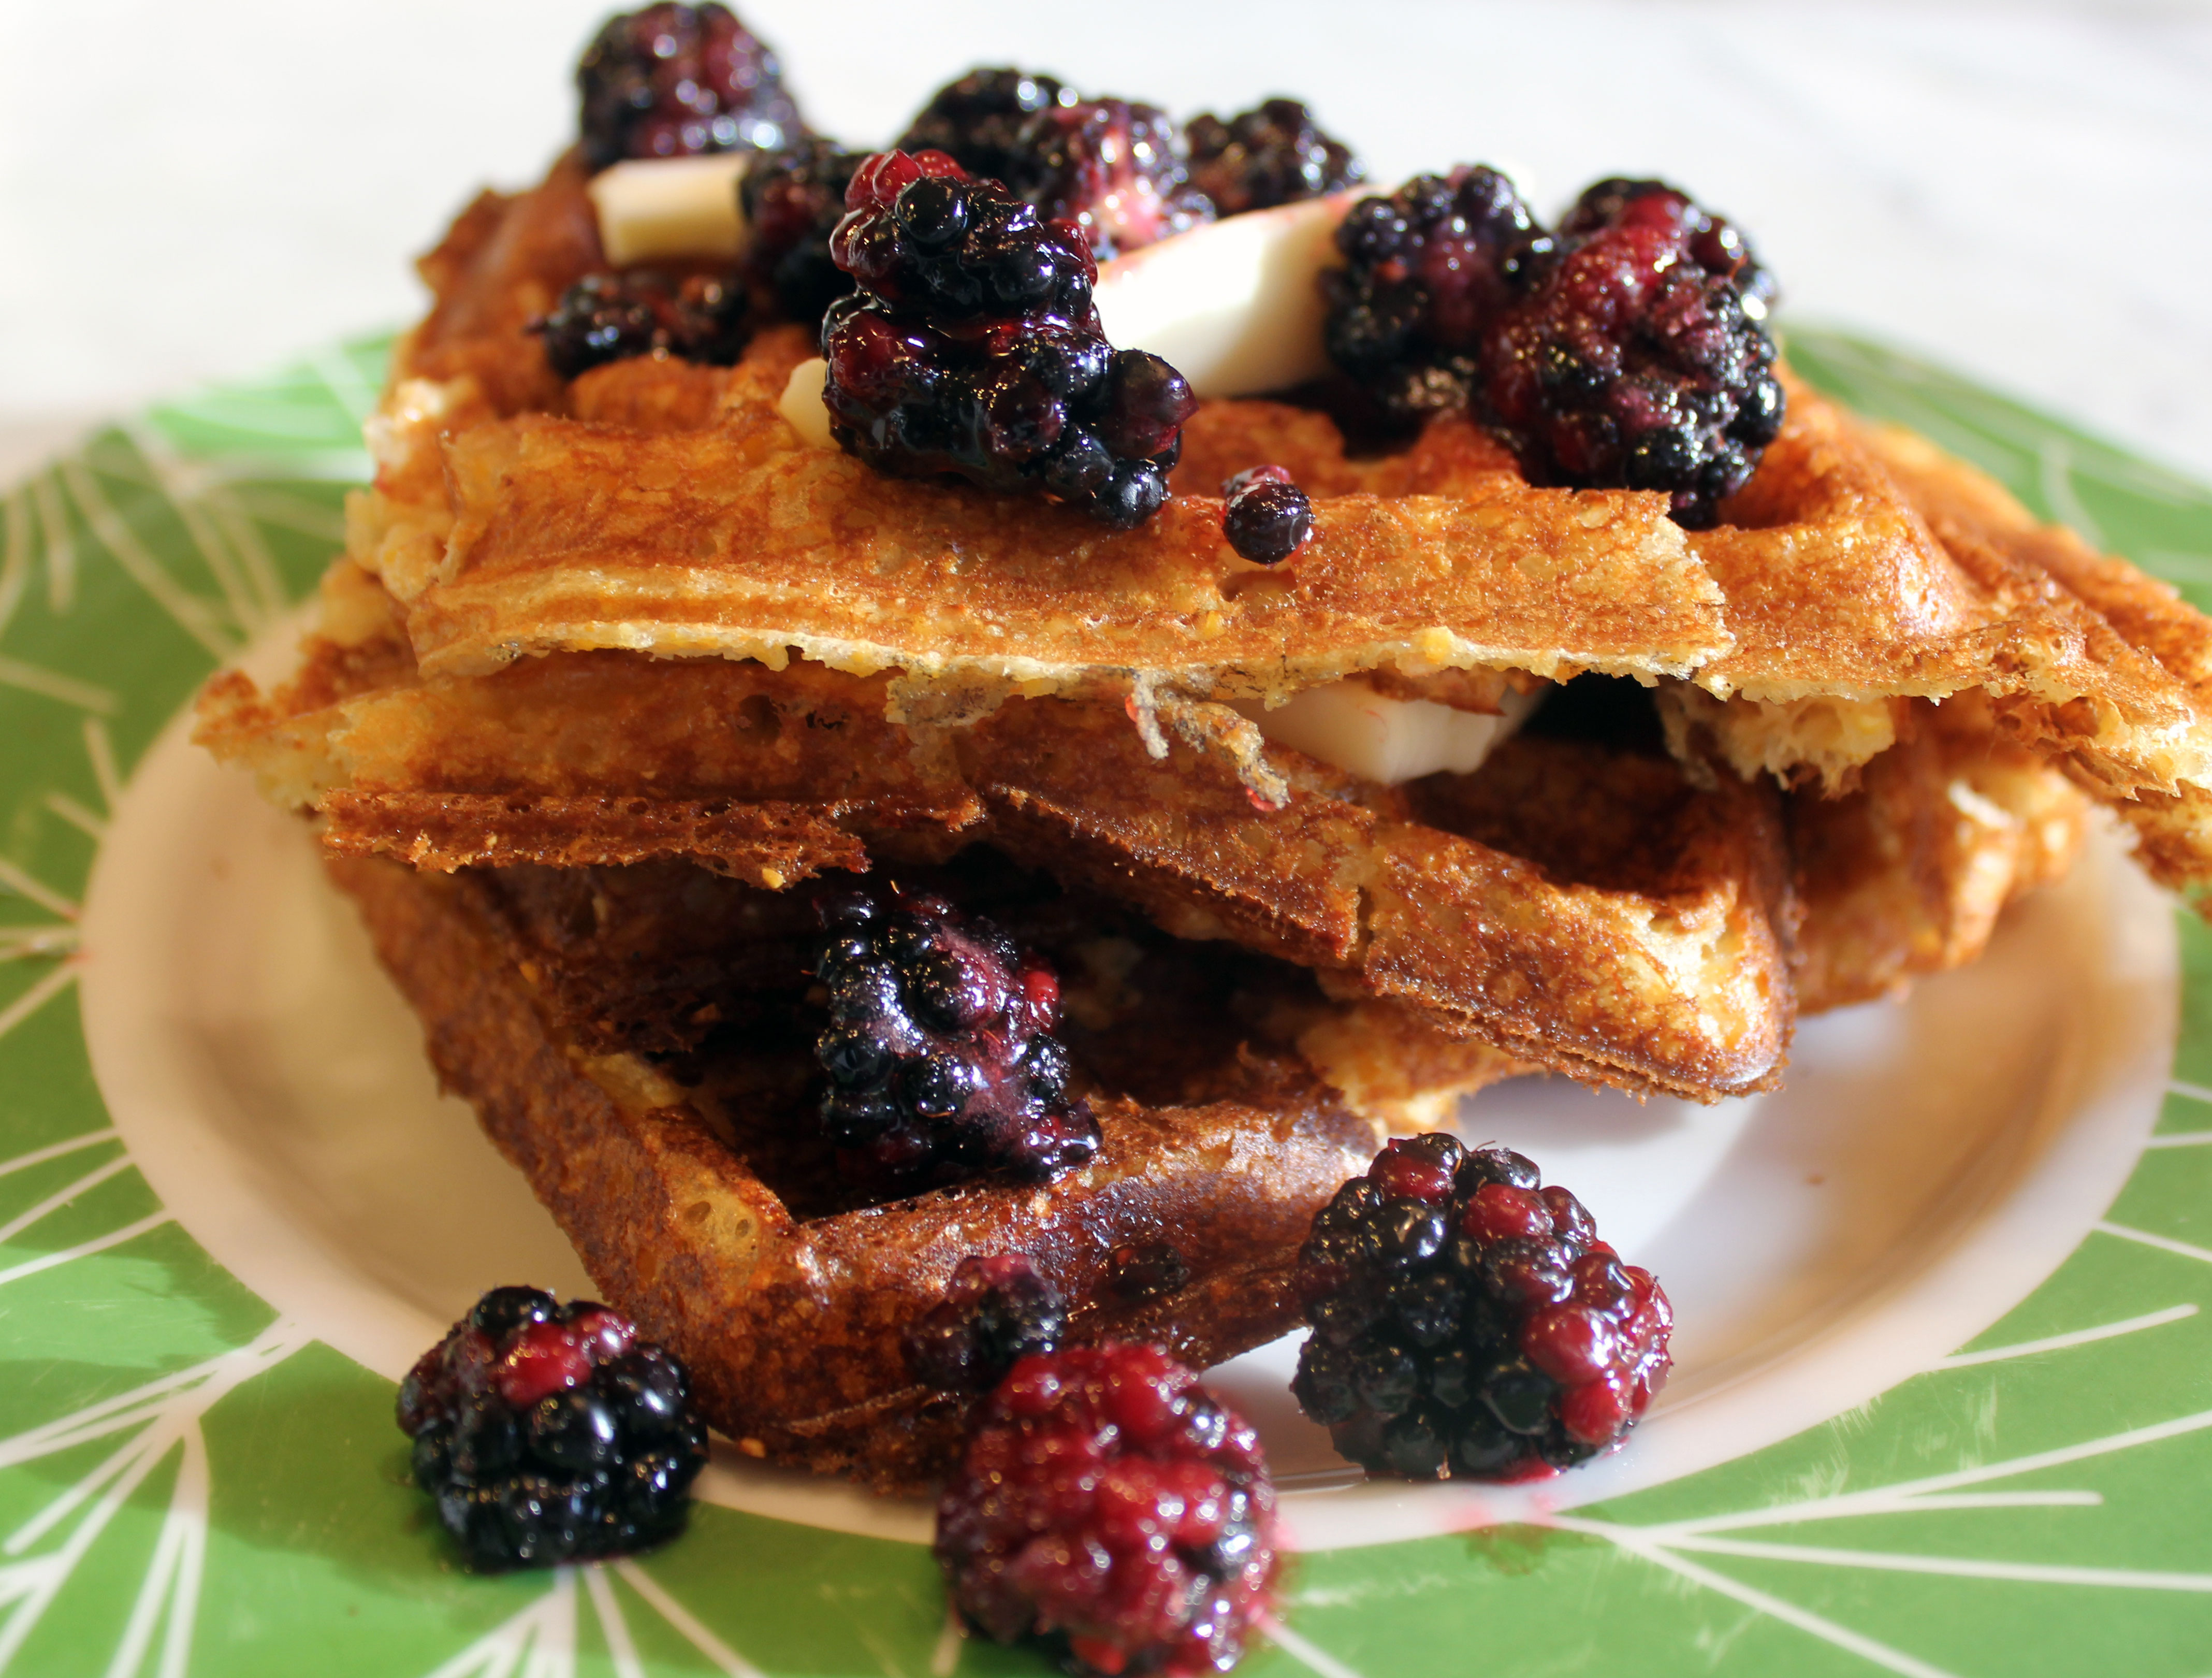 TBT Recipe: Crispy Cornmeal Waffles with Buttermilk and Maple Syrup